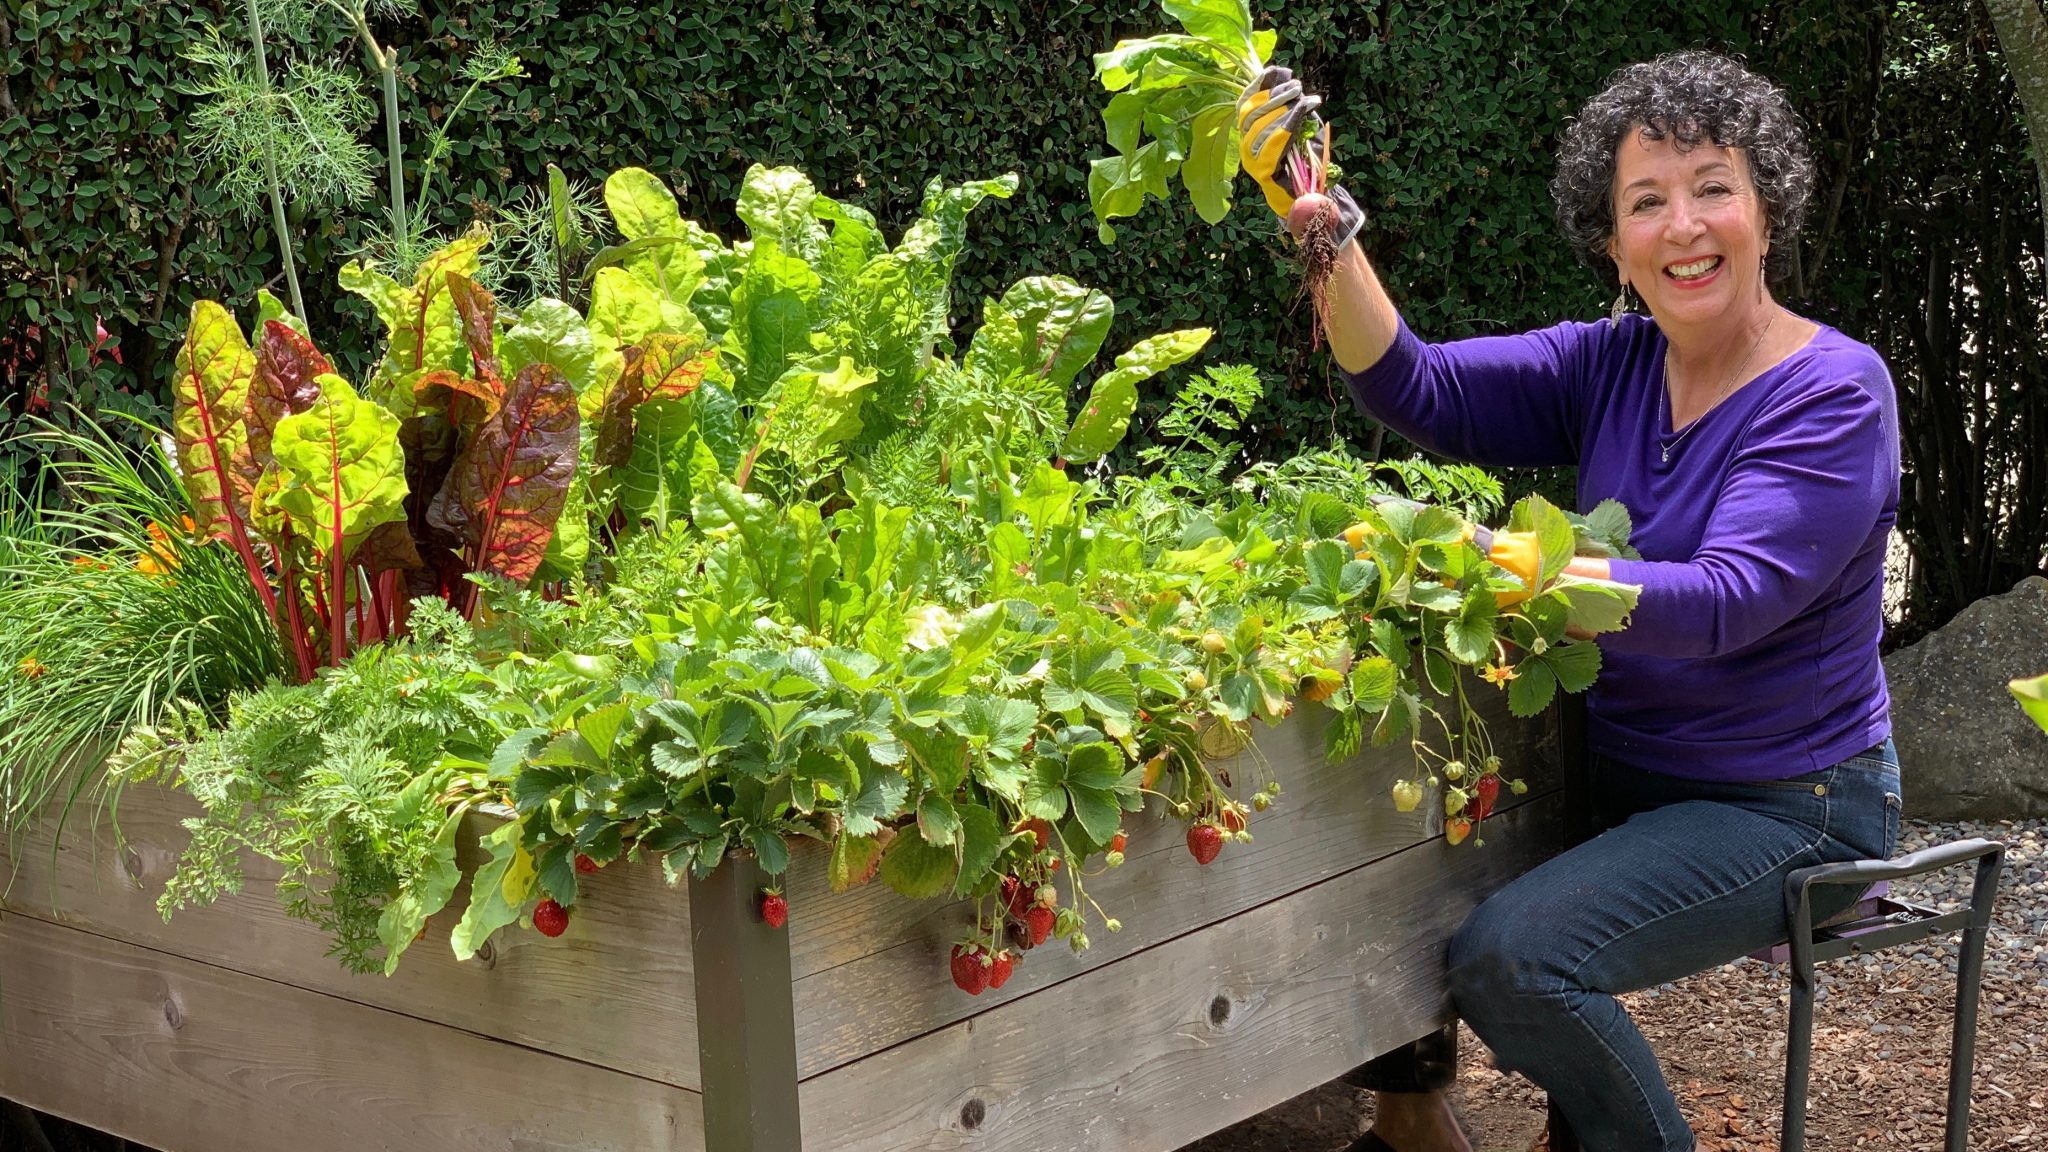 Resilient Gardener Toni Gattone Growing Your Own Food With My Online Series